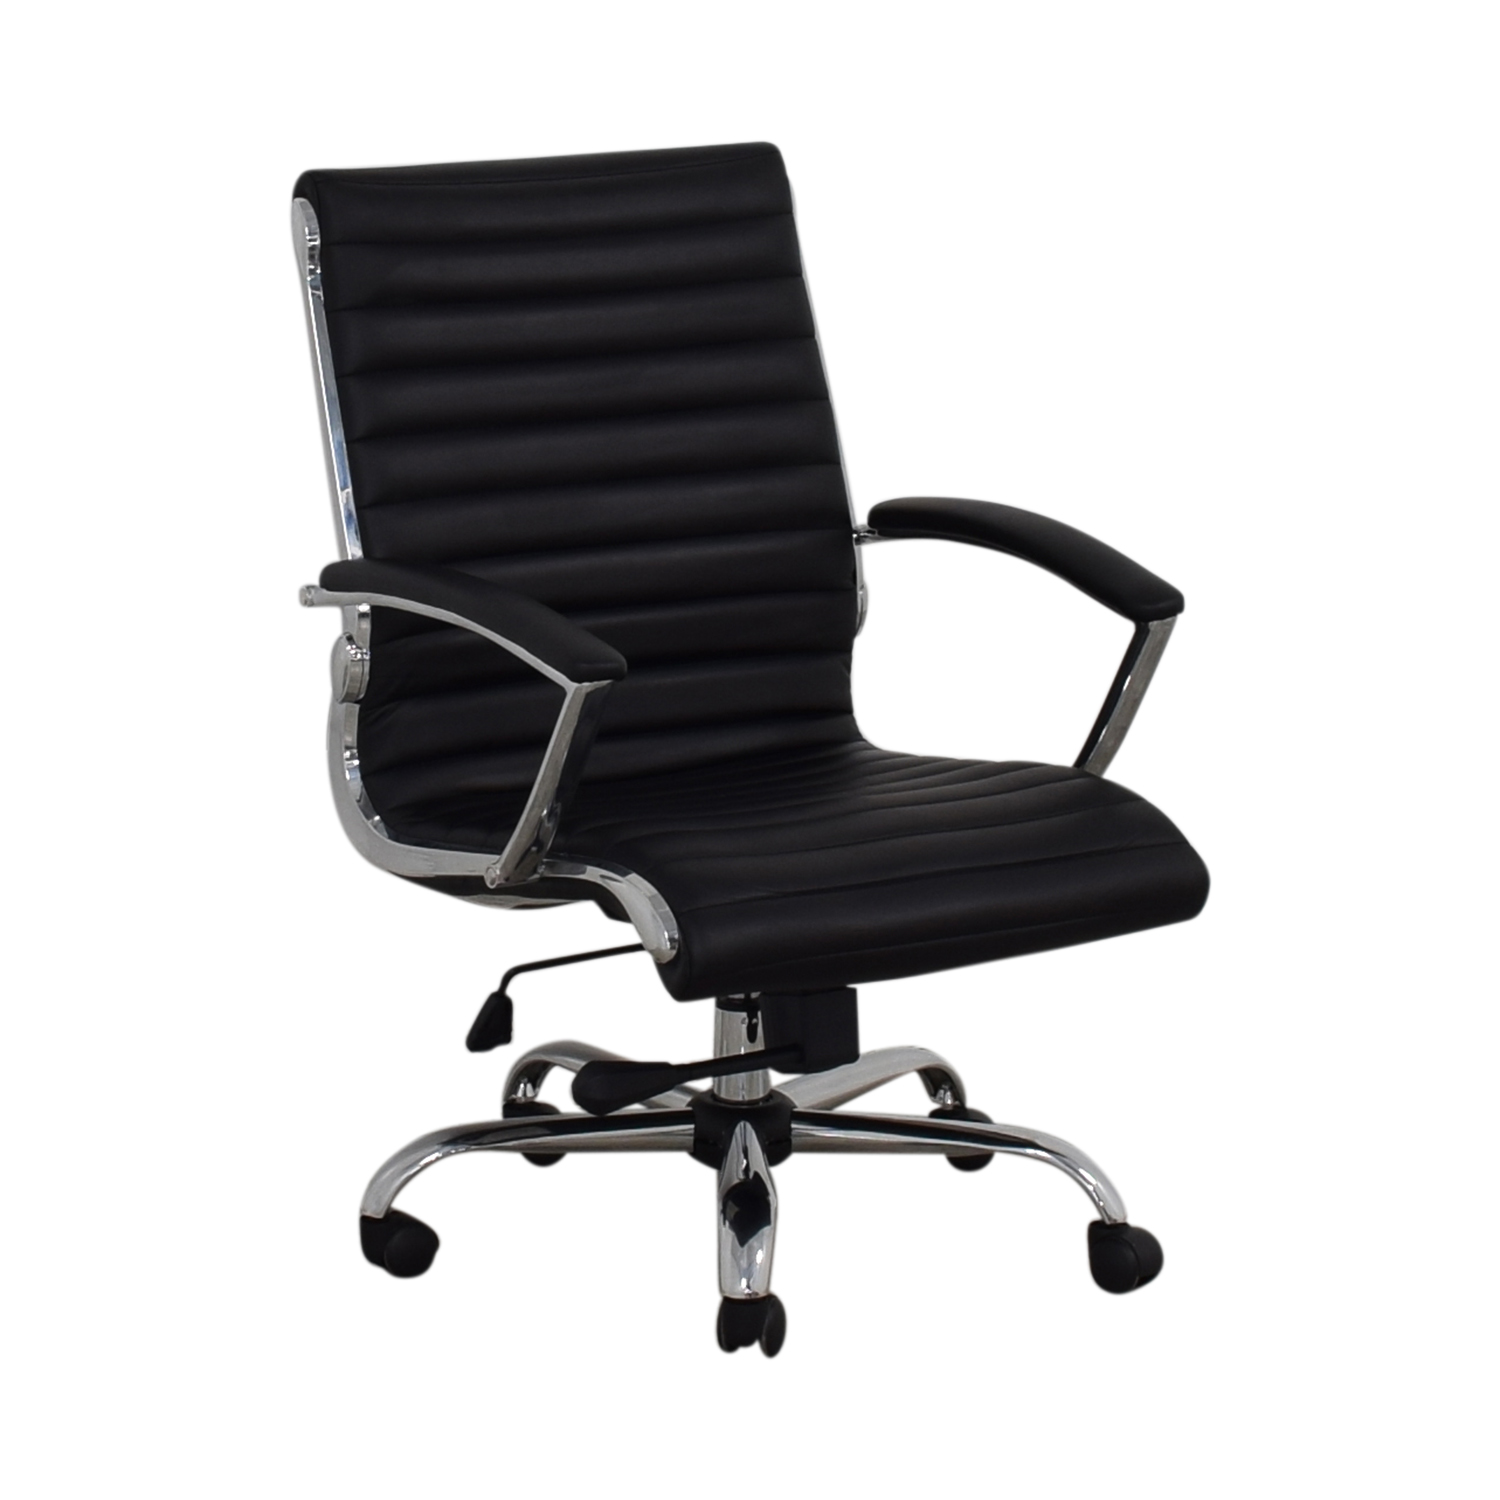 Staples Staples Adjustable Black Office Chair coupon